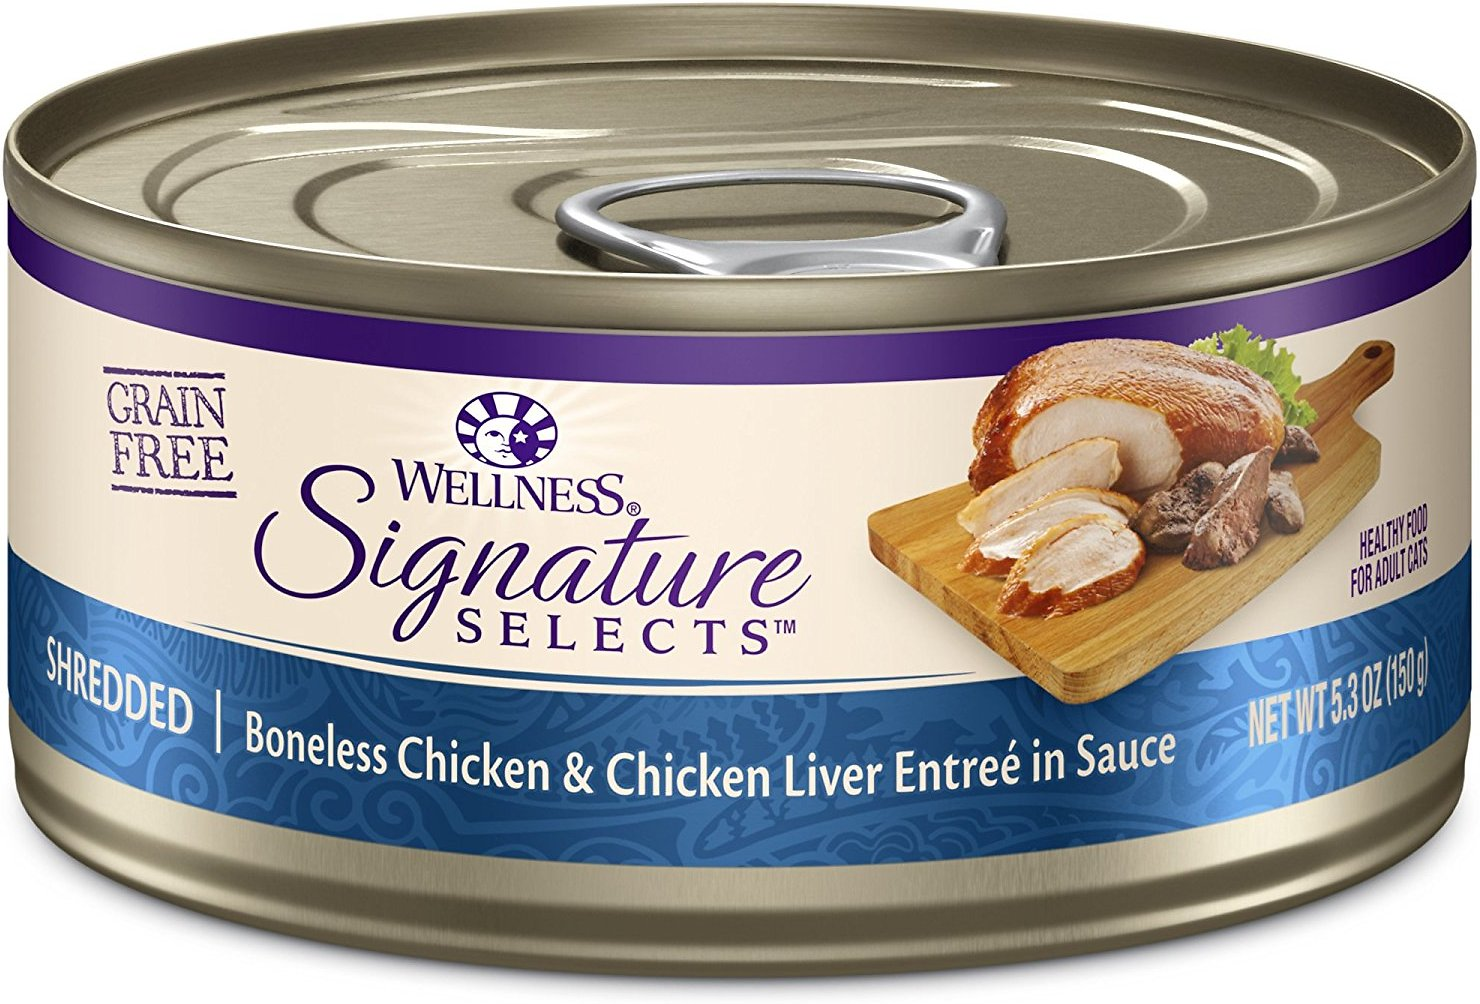 Wellness CORE Signature Selects Shredded Boneless Chicken & Chicken Liver Entree in Sauce Grain-Free Canned Cat Food